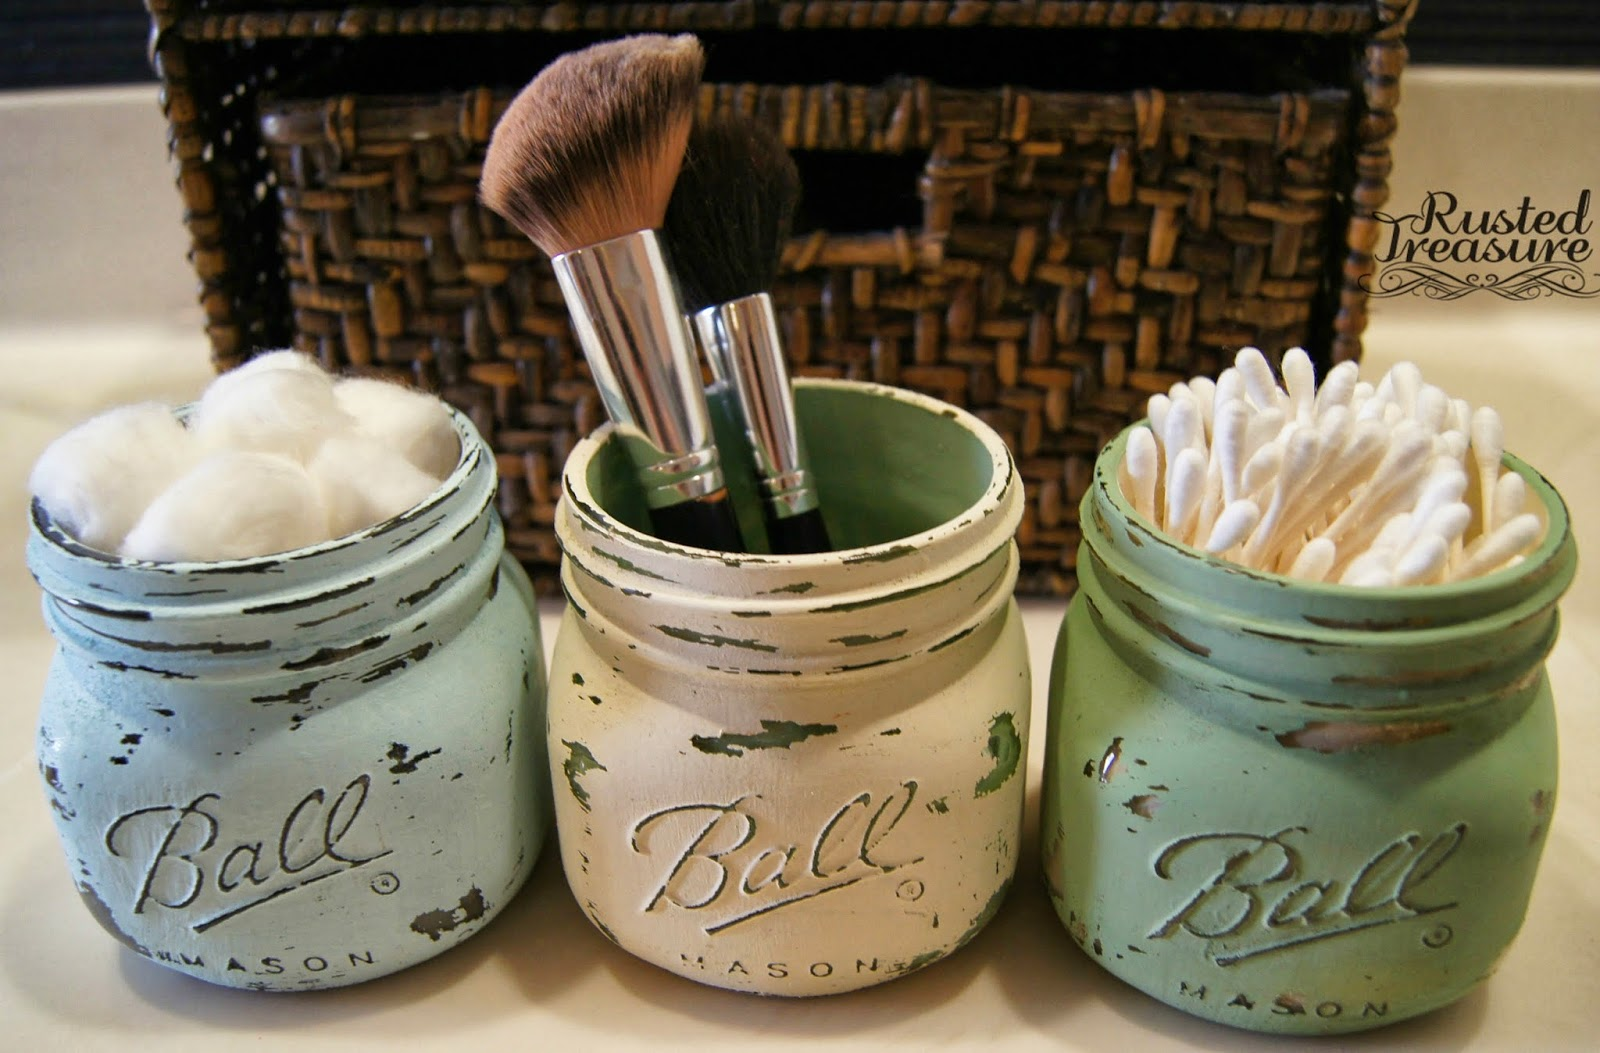 11 Fantastic Small Bathroom Organizing Ideas: Painted & distressed ball jars used for bathroom organization by Rusted Treasure